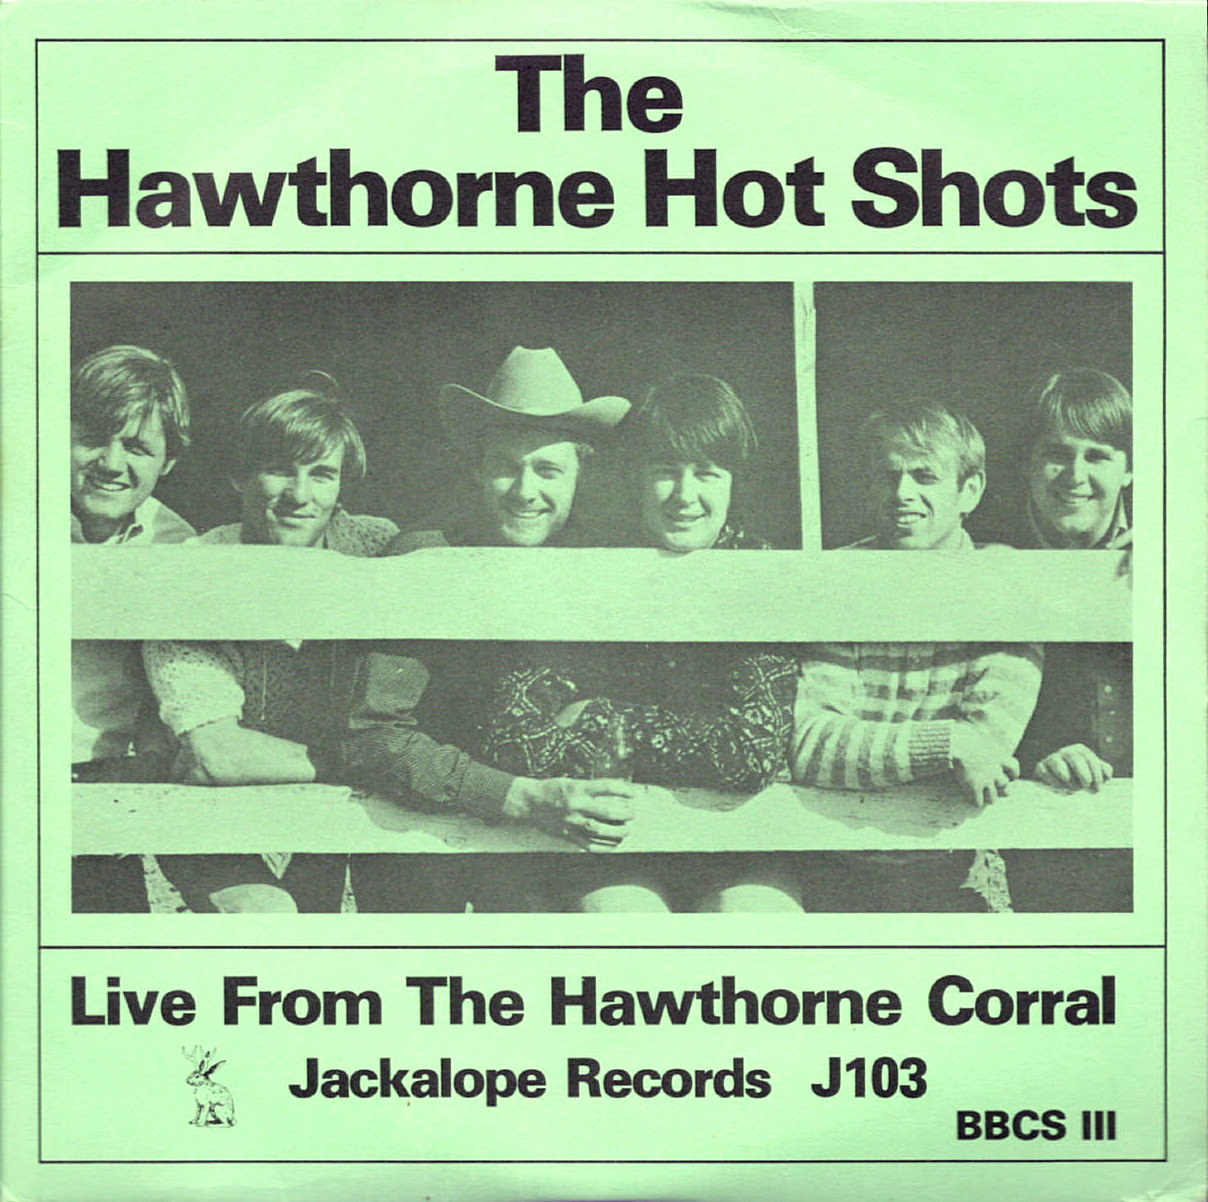 The Hawthorne Hotshots cover